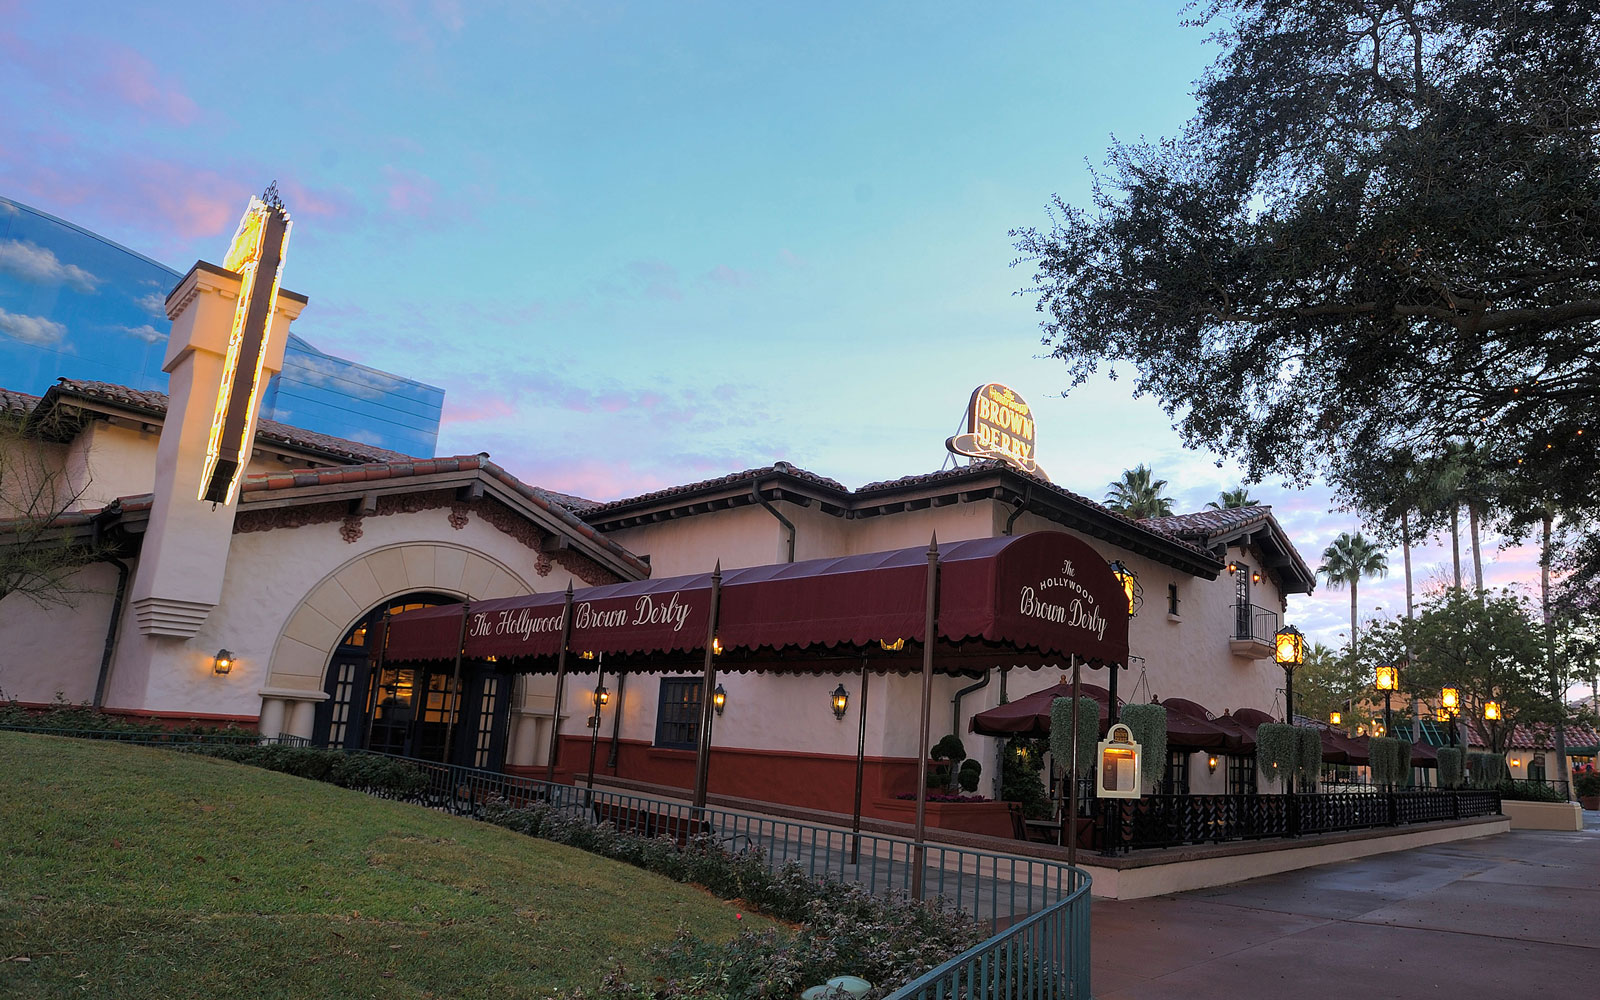 Hollywood Brown Derby at Disney's Hollywood Studios, CA